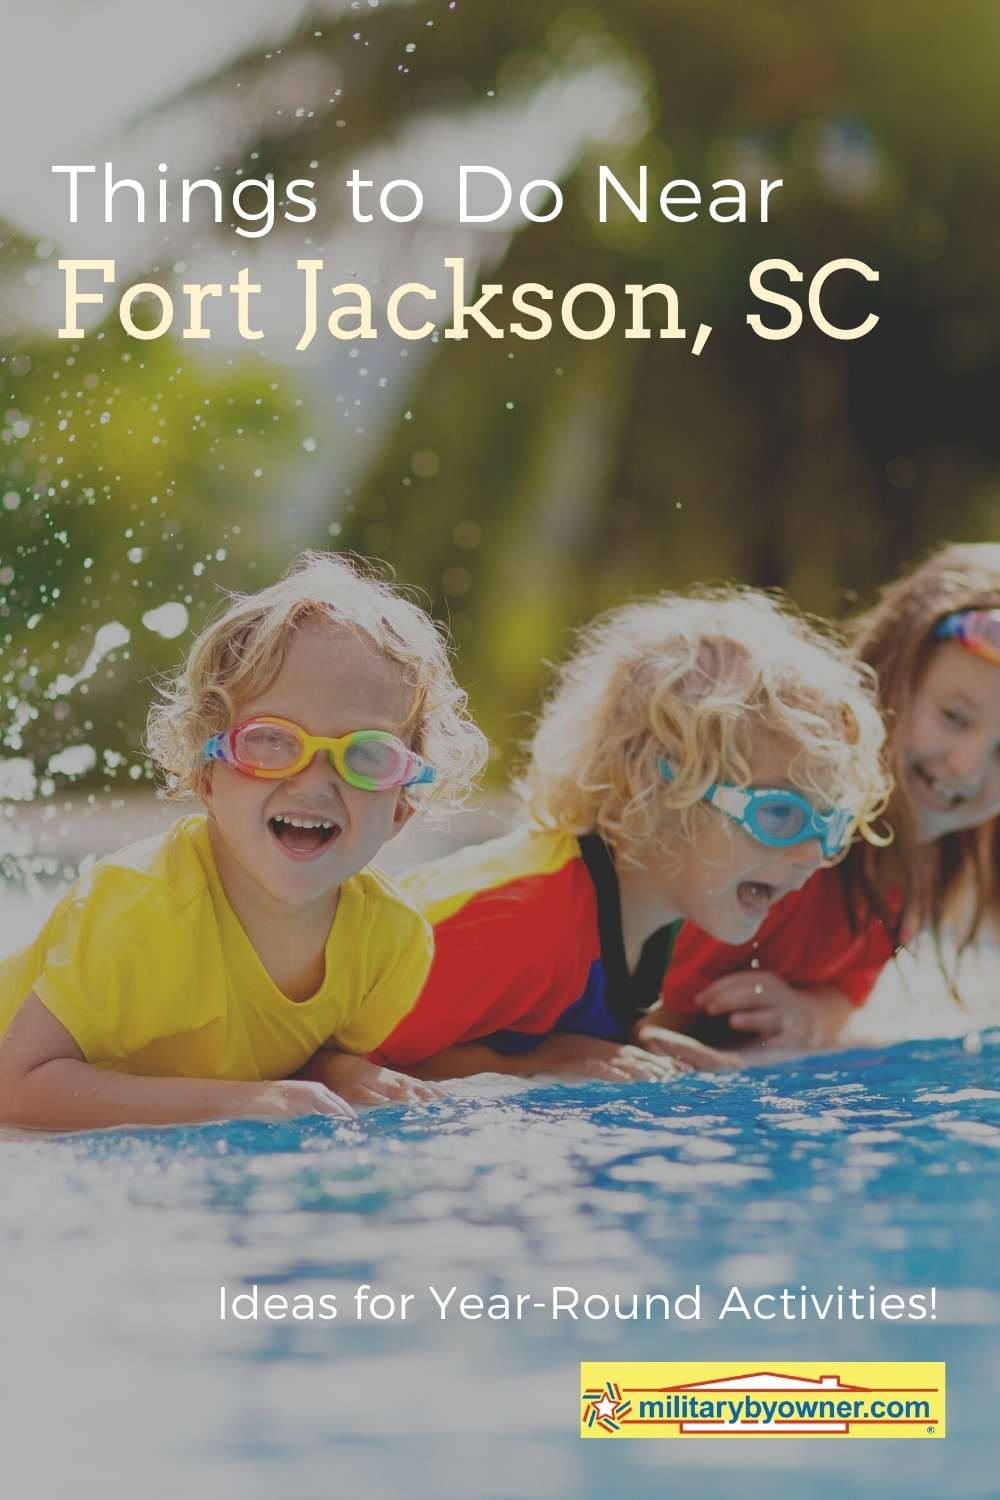 Things to Do Near Fort Jackson, SC